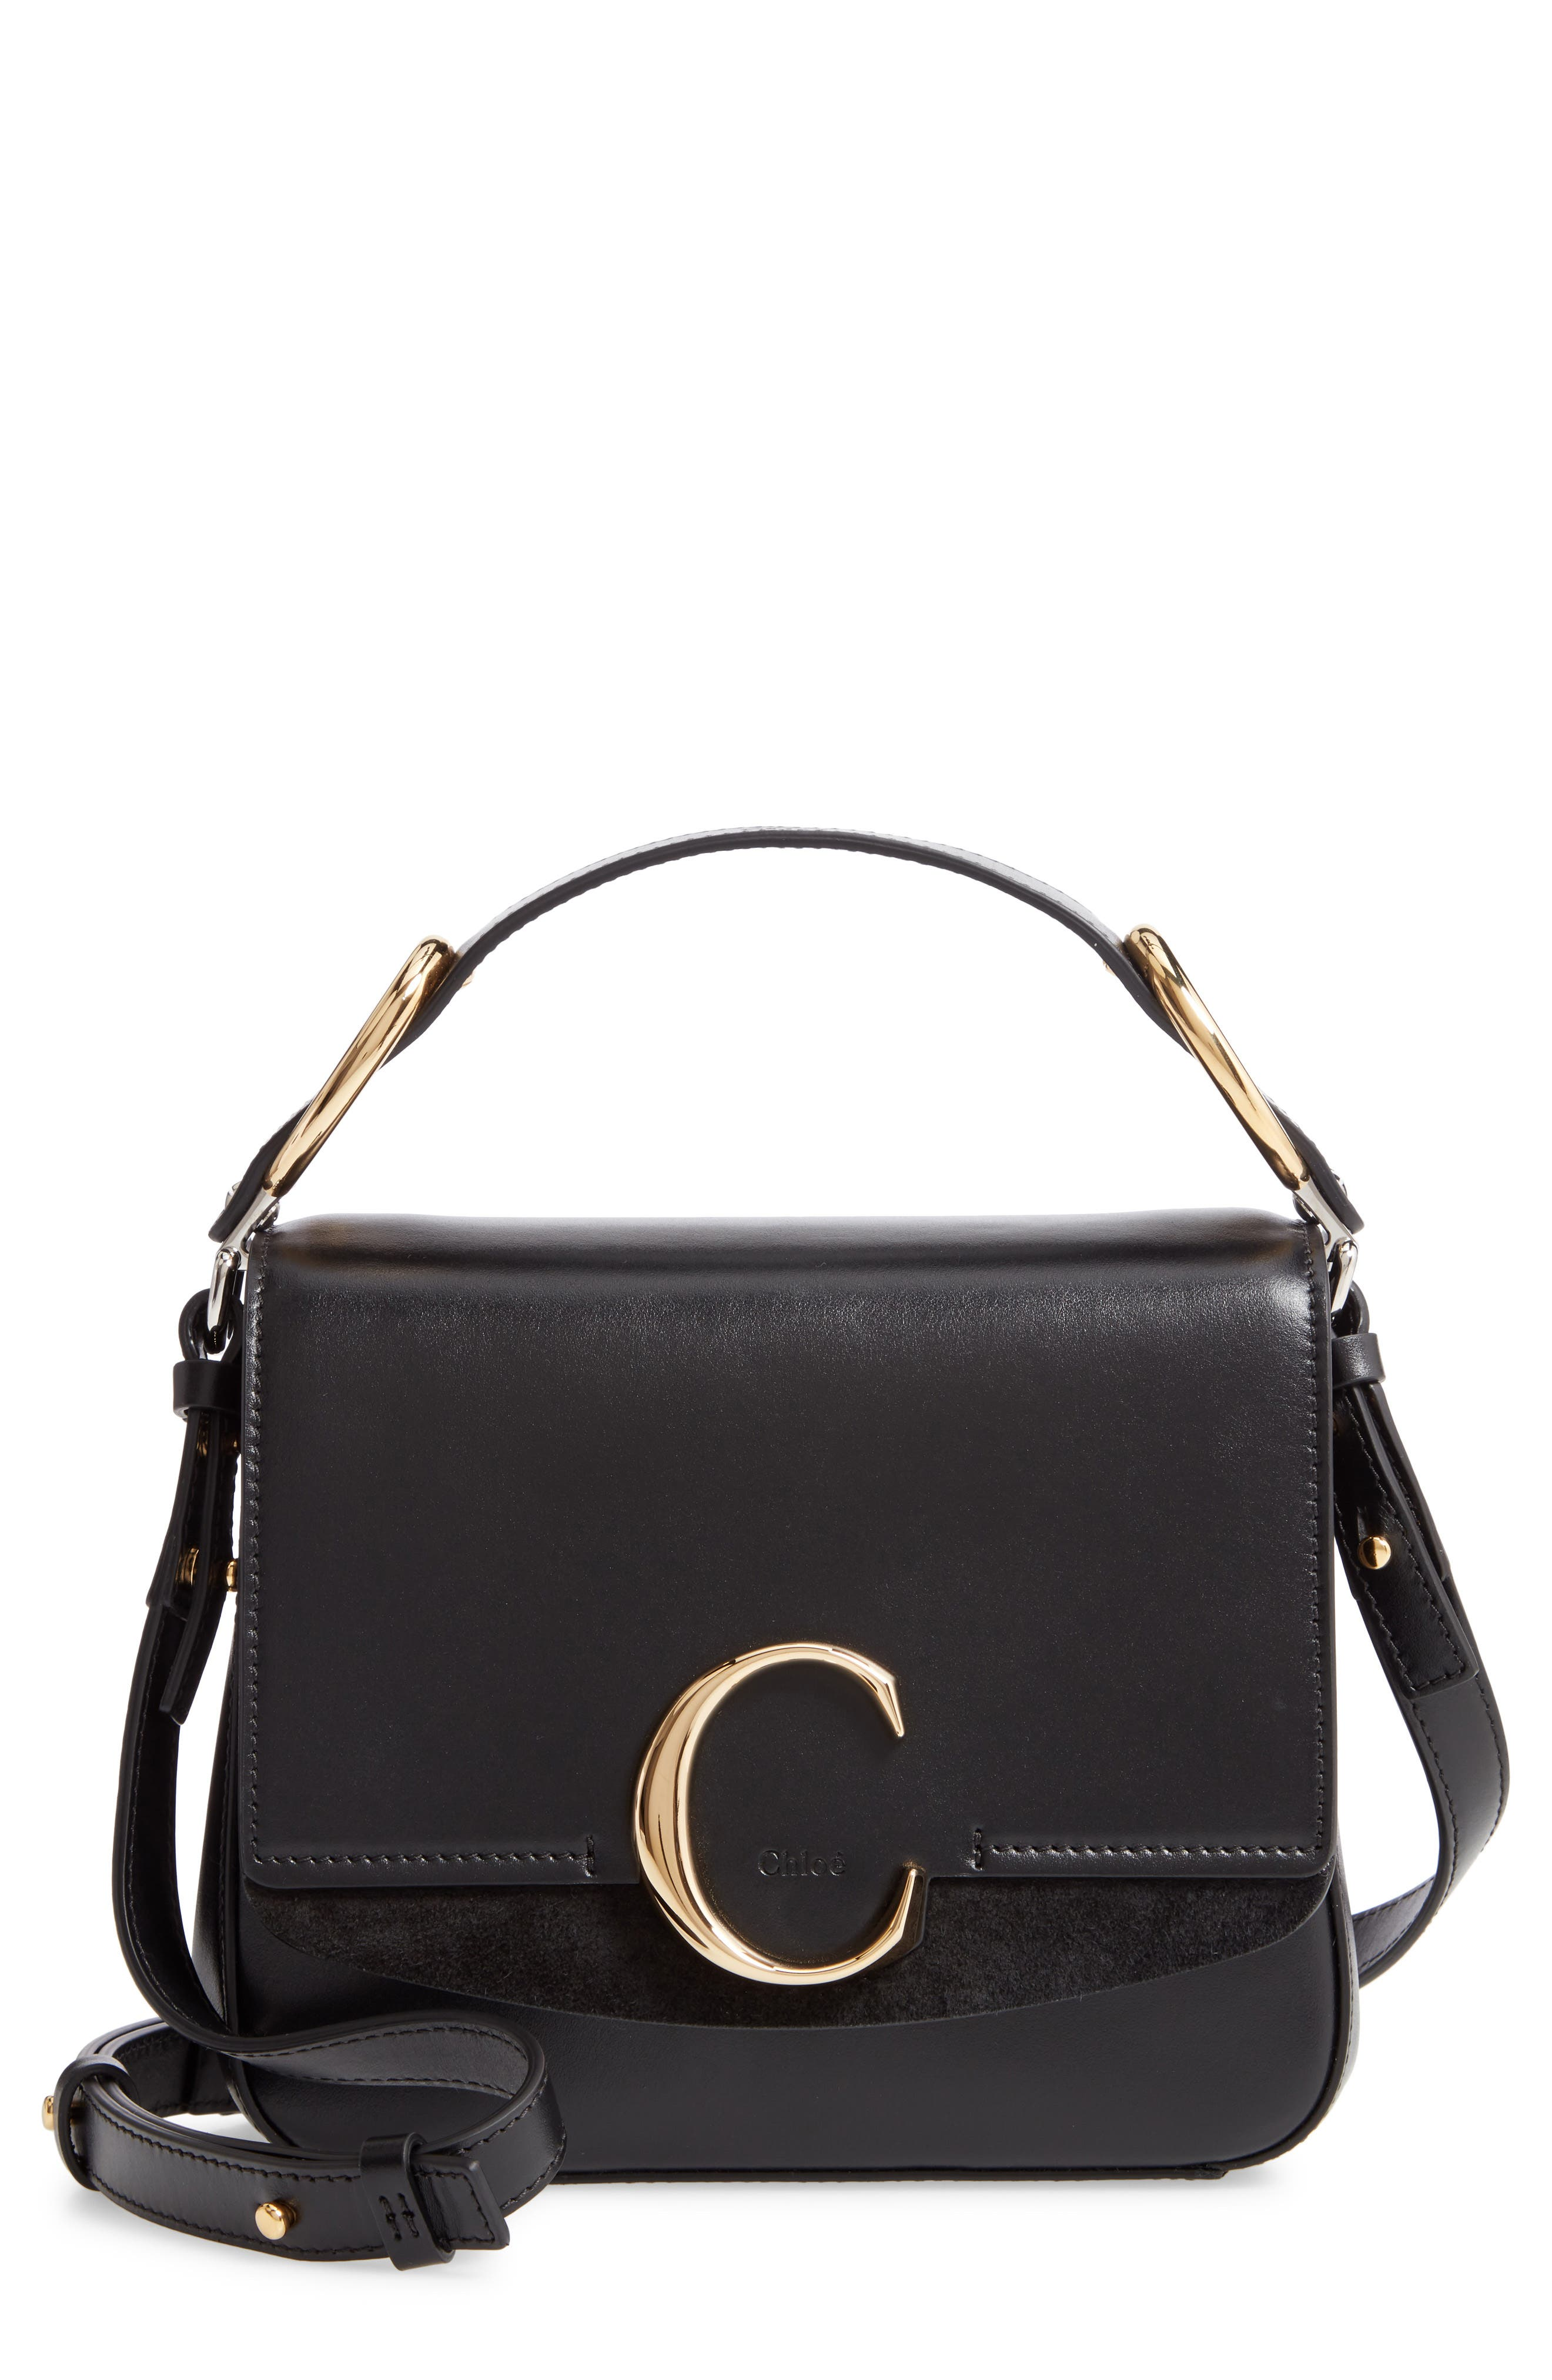 Chloé Small C Convertible Leather Bag   Nordstrom